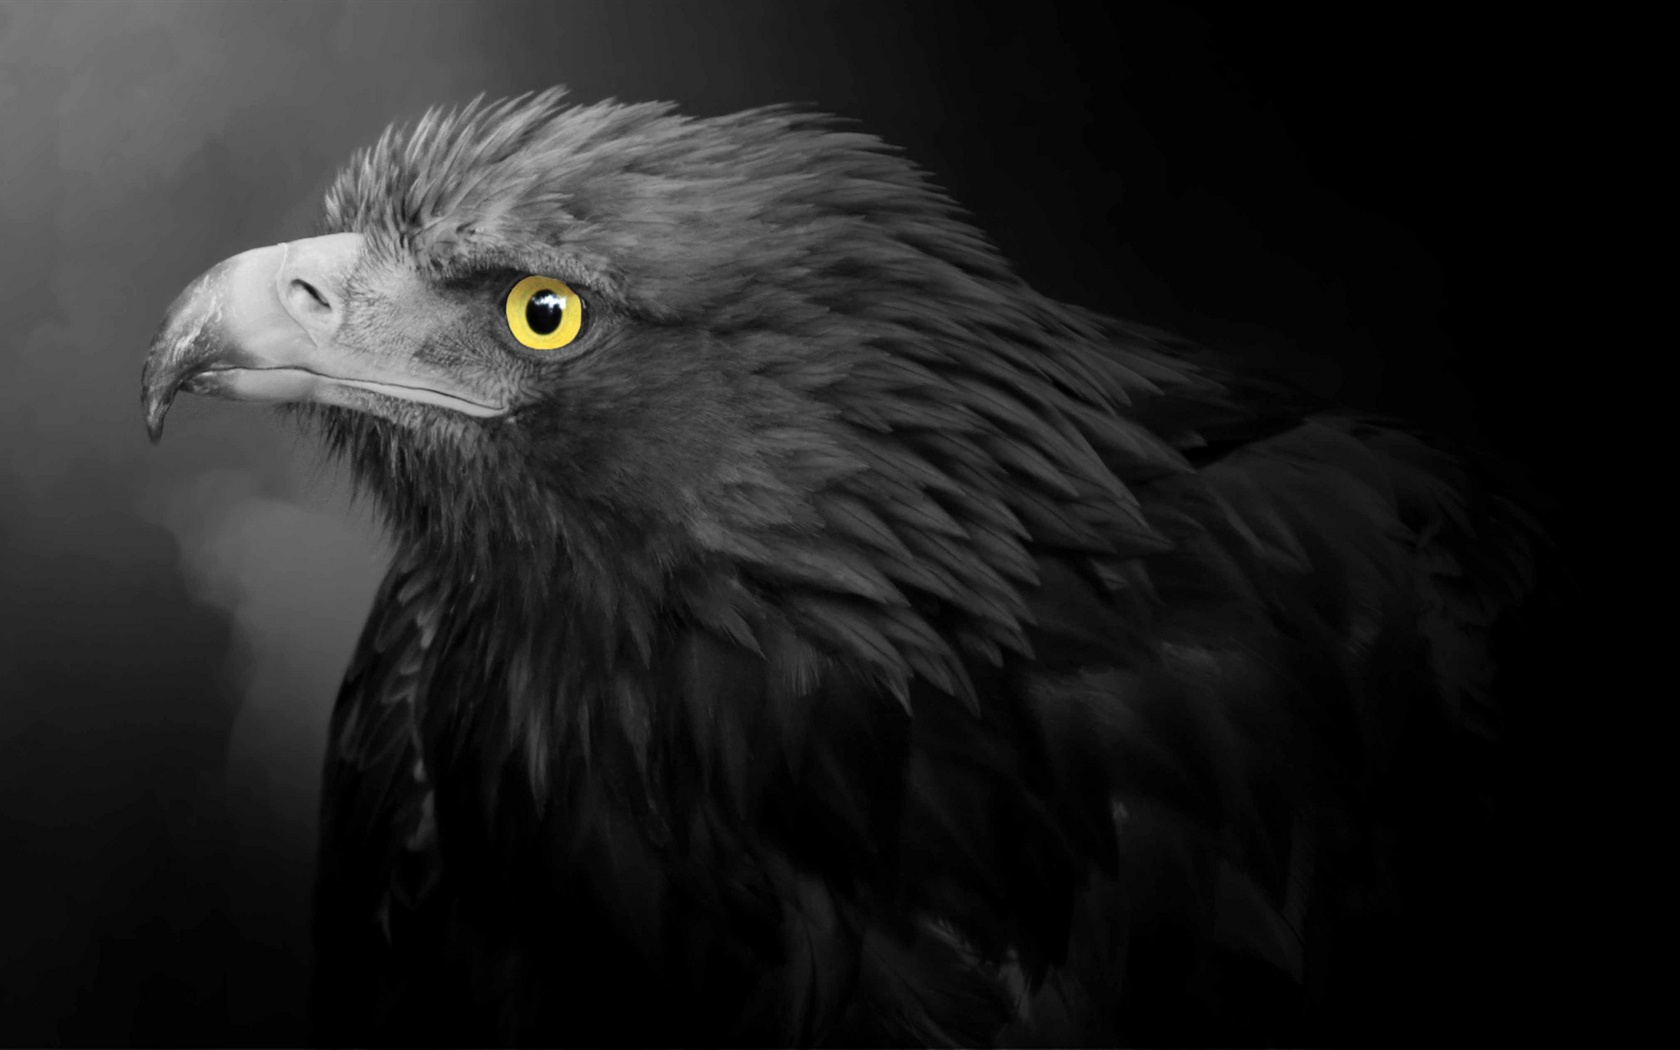 Eagle Black Feathers Yellow Eyes 640x1136 Iphone 5 5s 5c